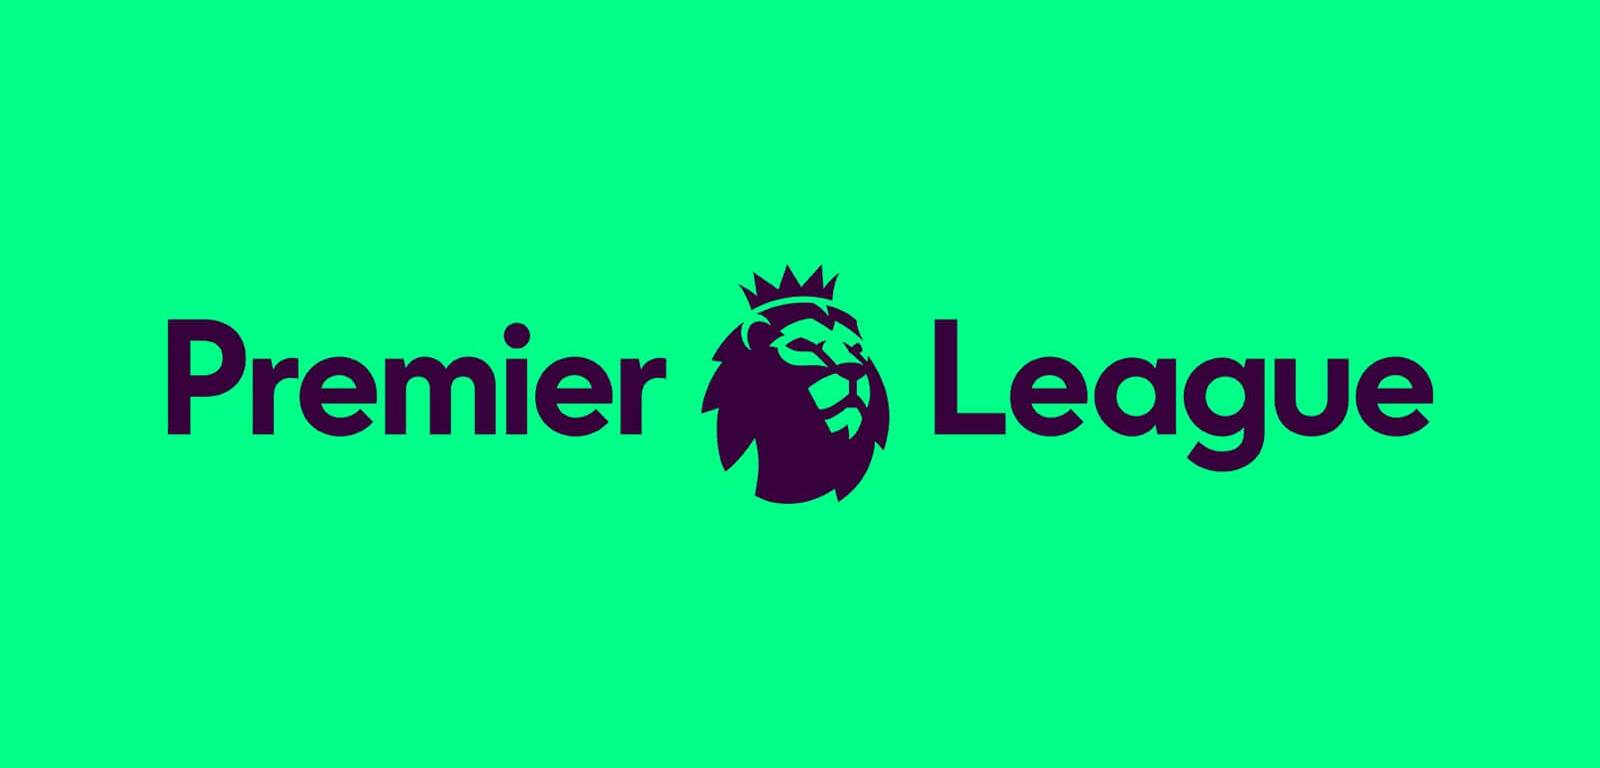 Join our Fantasy Premier League mini-league - great fpl prizes